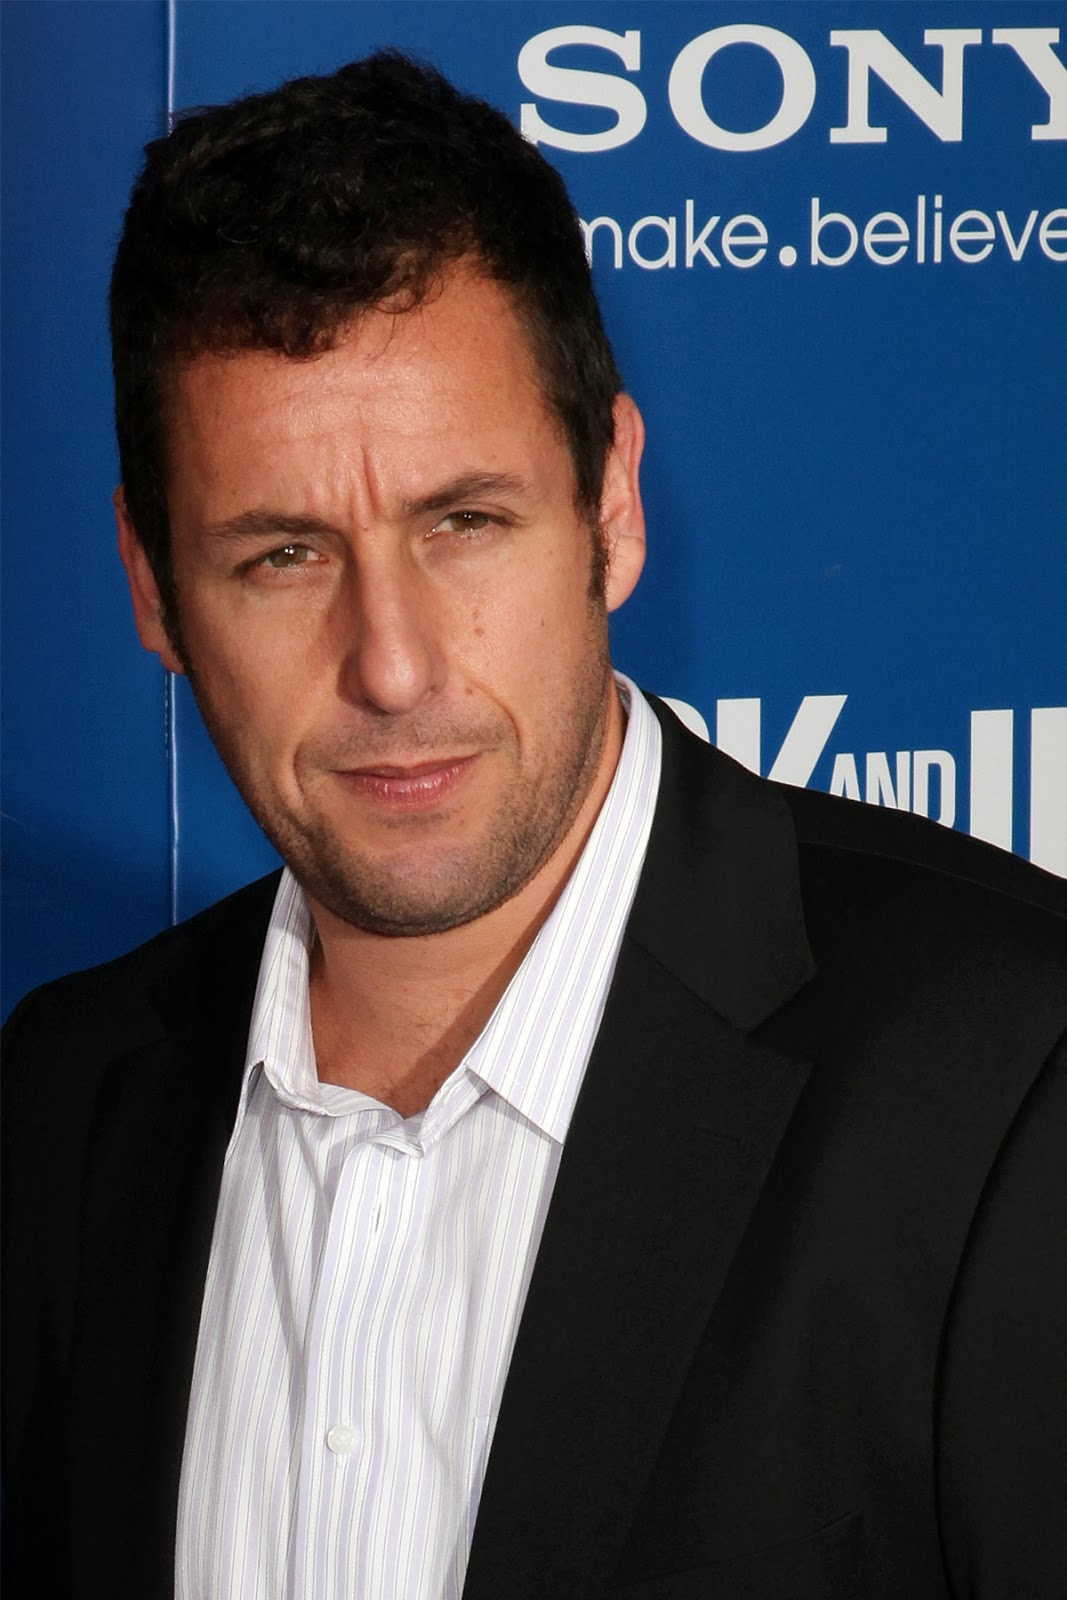 Sports Cars Pictures Wallpapers Adam Sandler Wallpapers Hd Wallpapers High Definition